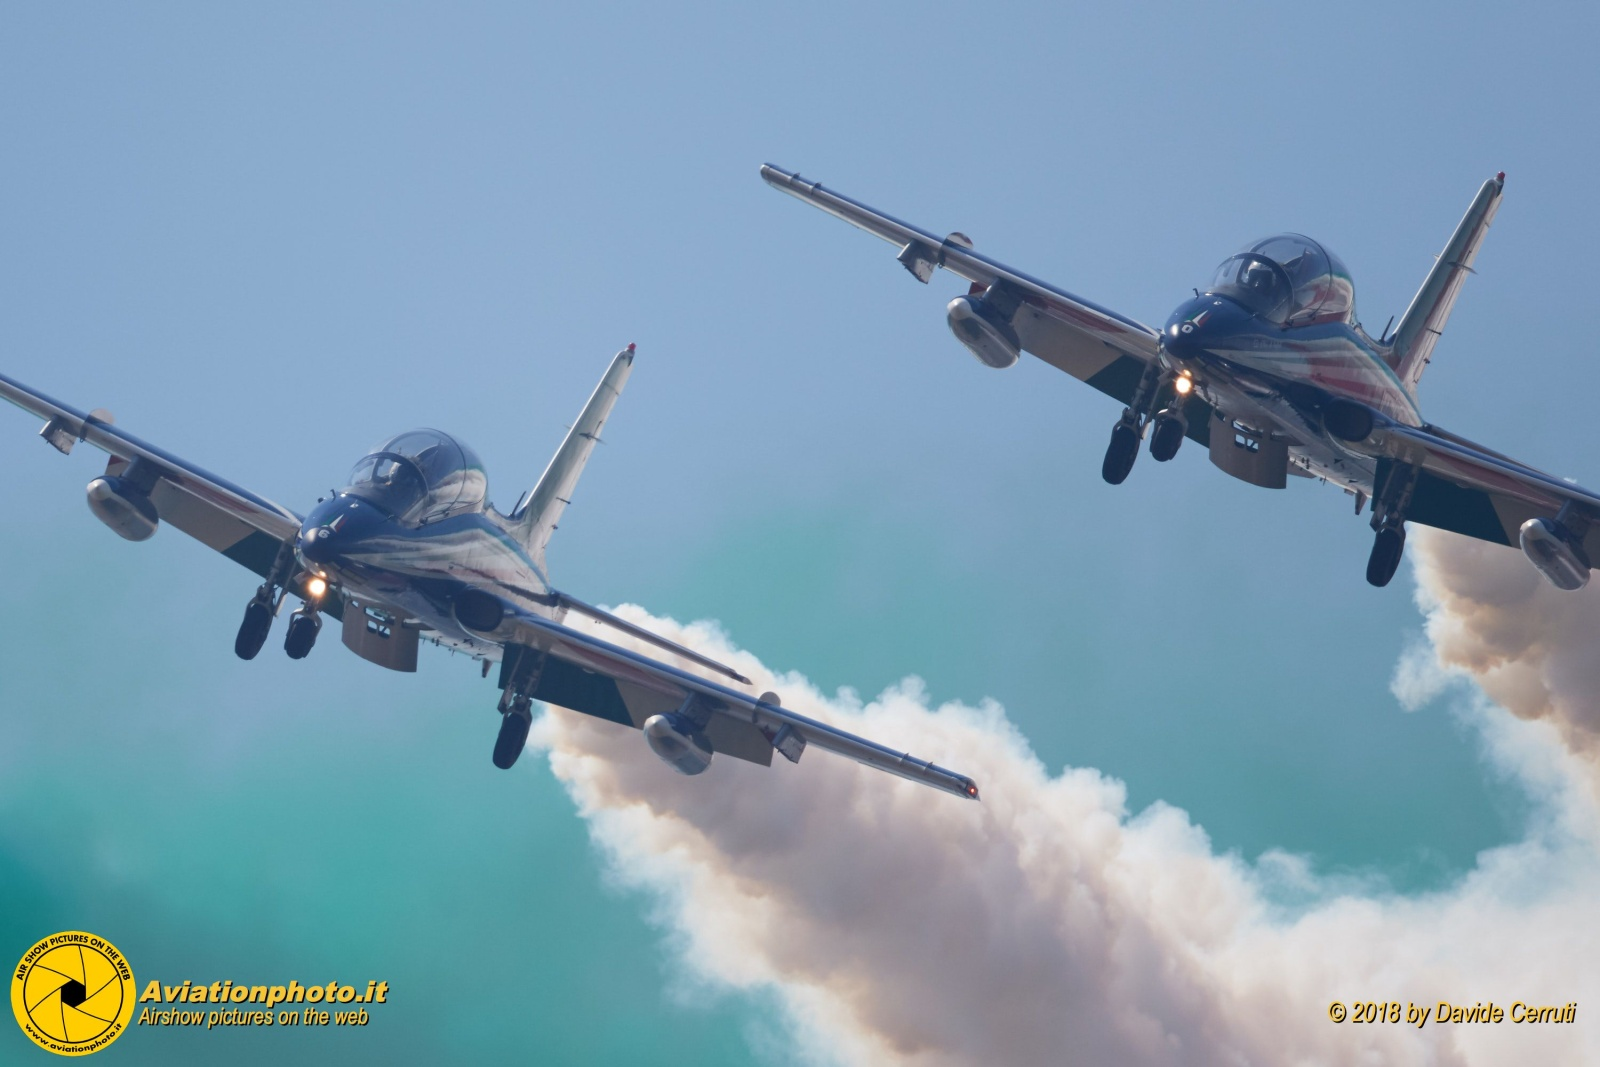 Special Frecce Tricolori - 35 years of pictures